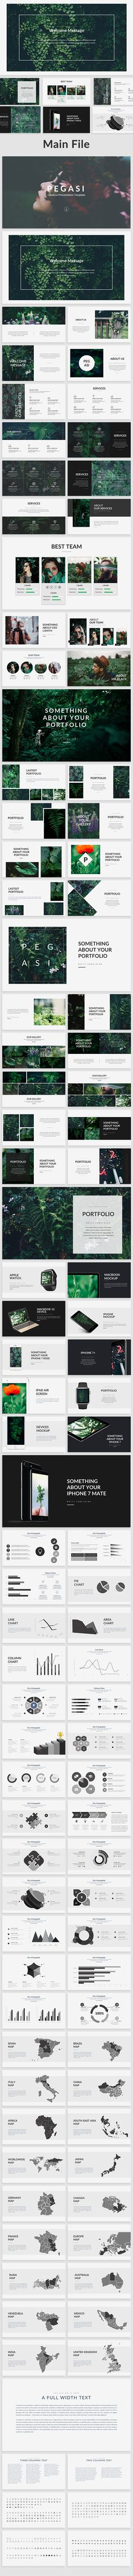 Pegasi - Creative Powerpoint Template - Creative #PowerPoint #Templates Download here: graphicriver.net/...